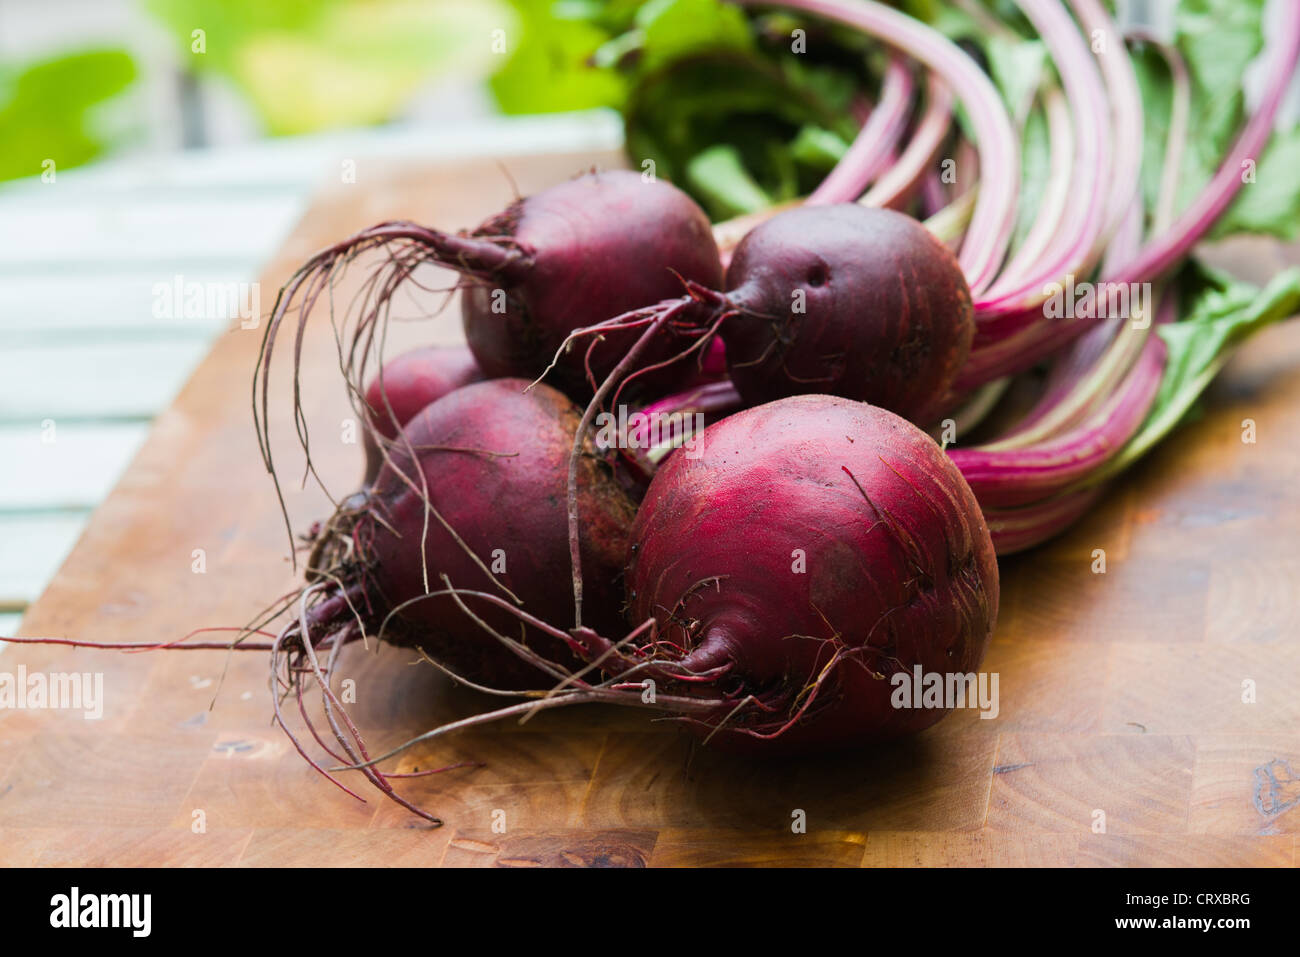 Beetroots on a chopping block - Stock Image